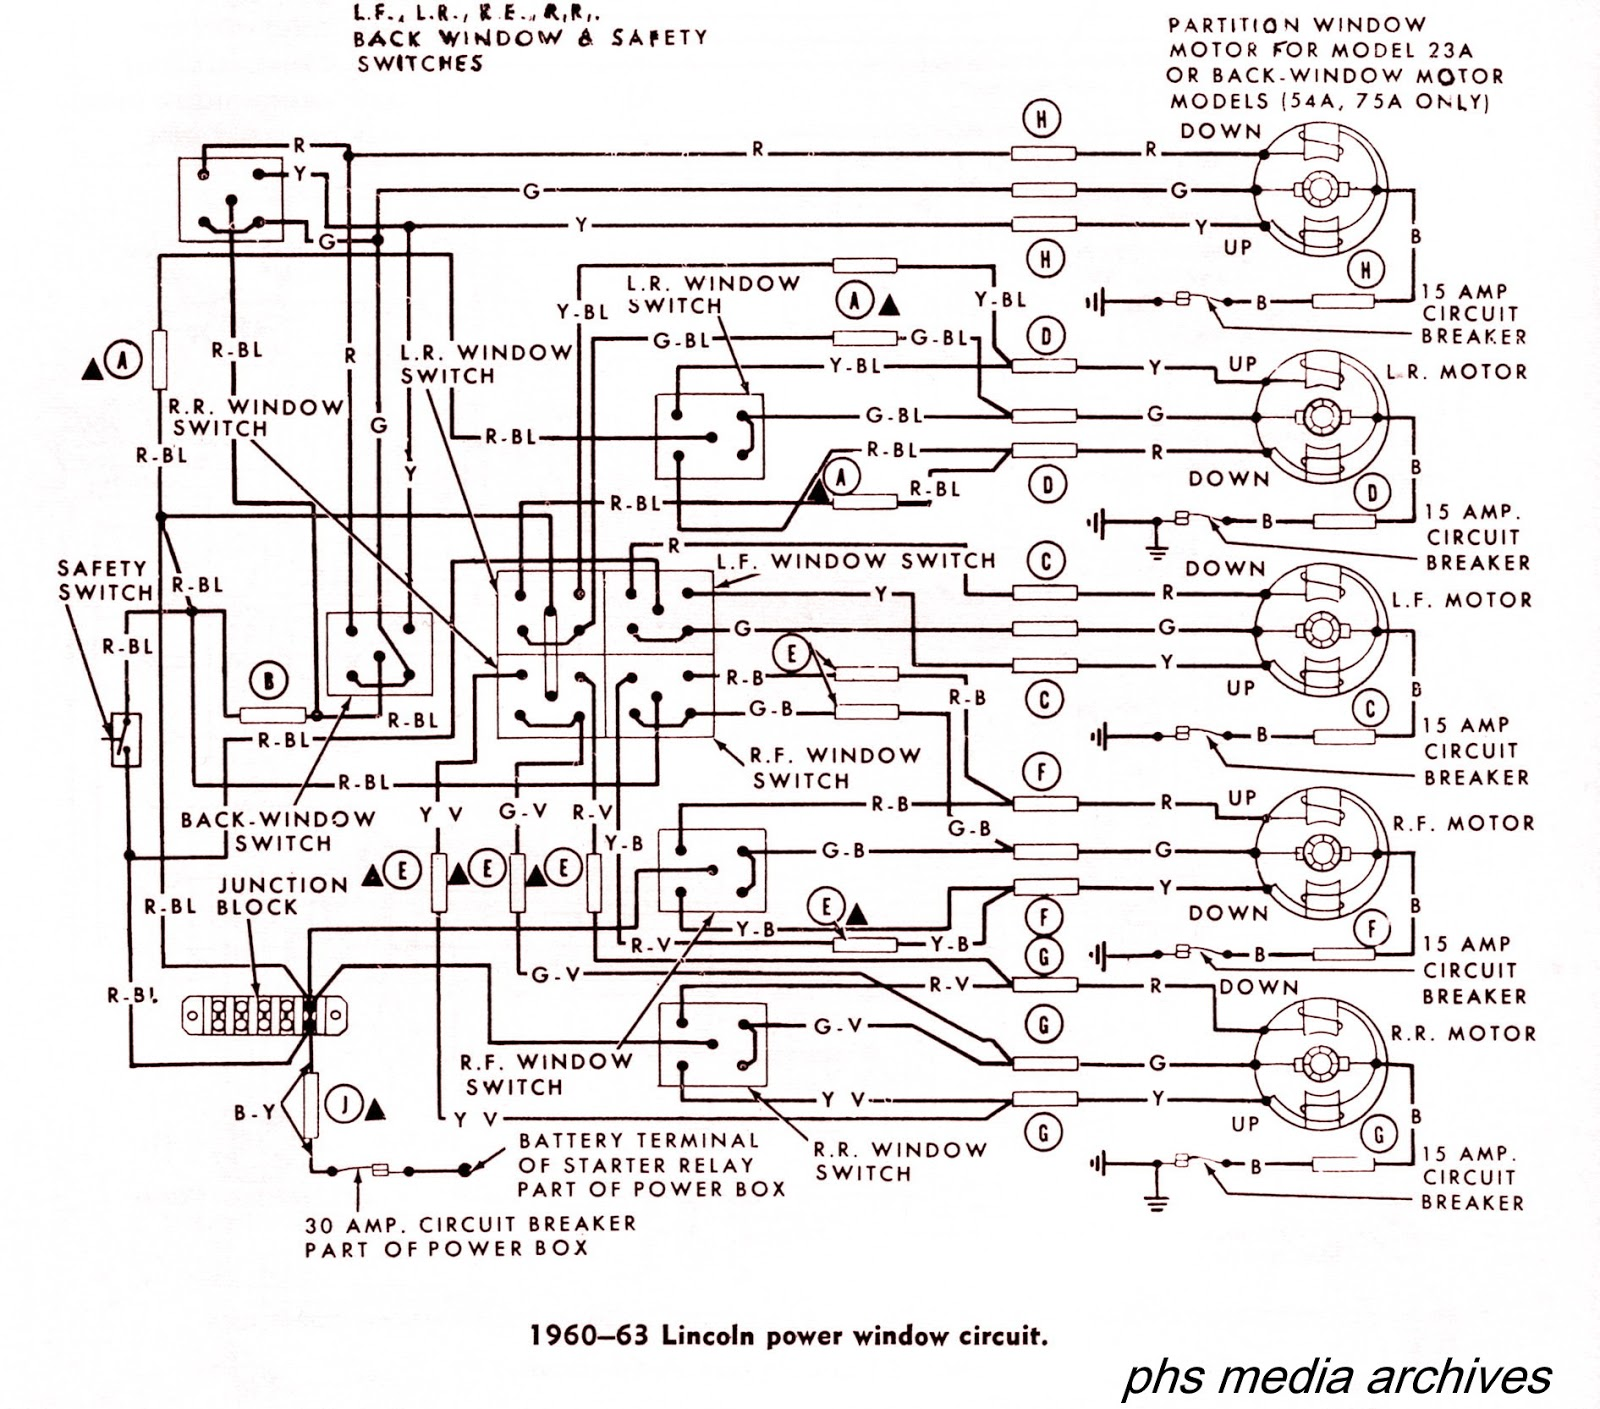 phscollectorcarworld: tech series: 1960-1964 lincoln wiring diagrams lincoln continental convertible top wiring diagram  phscollectorcarworld